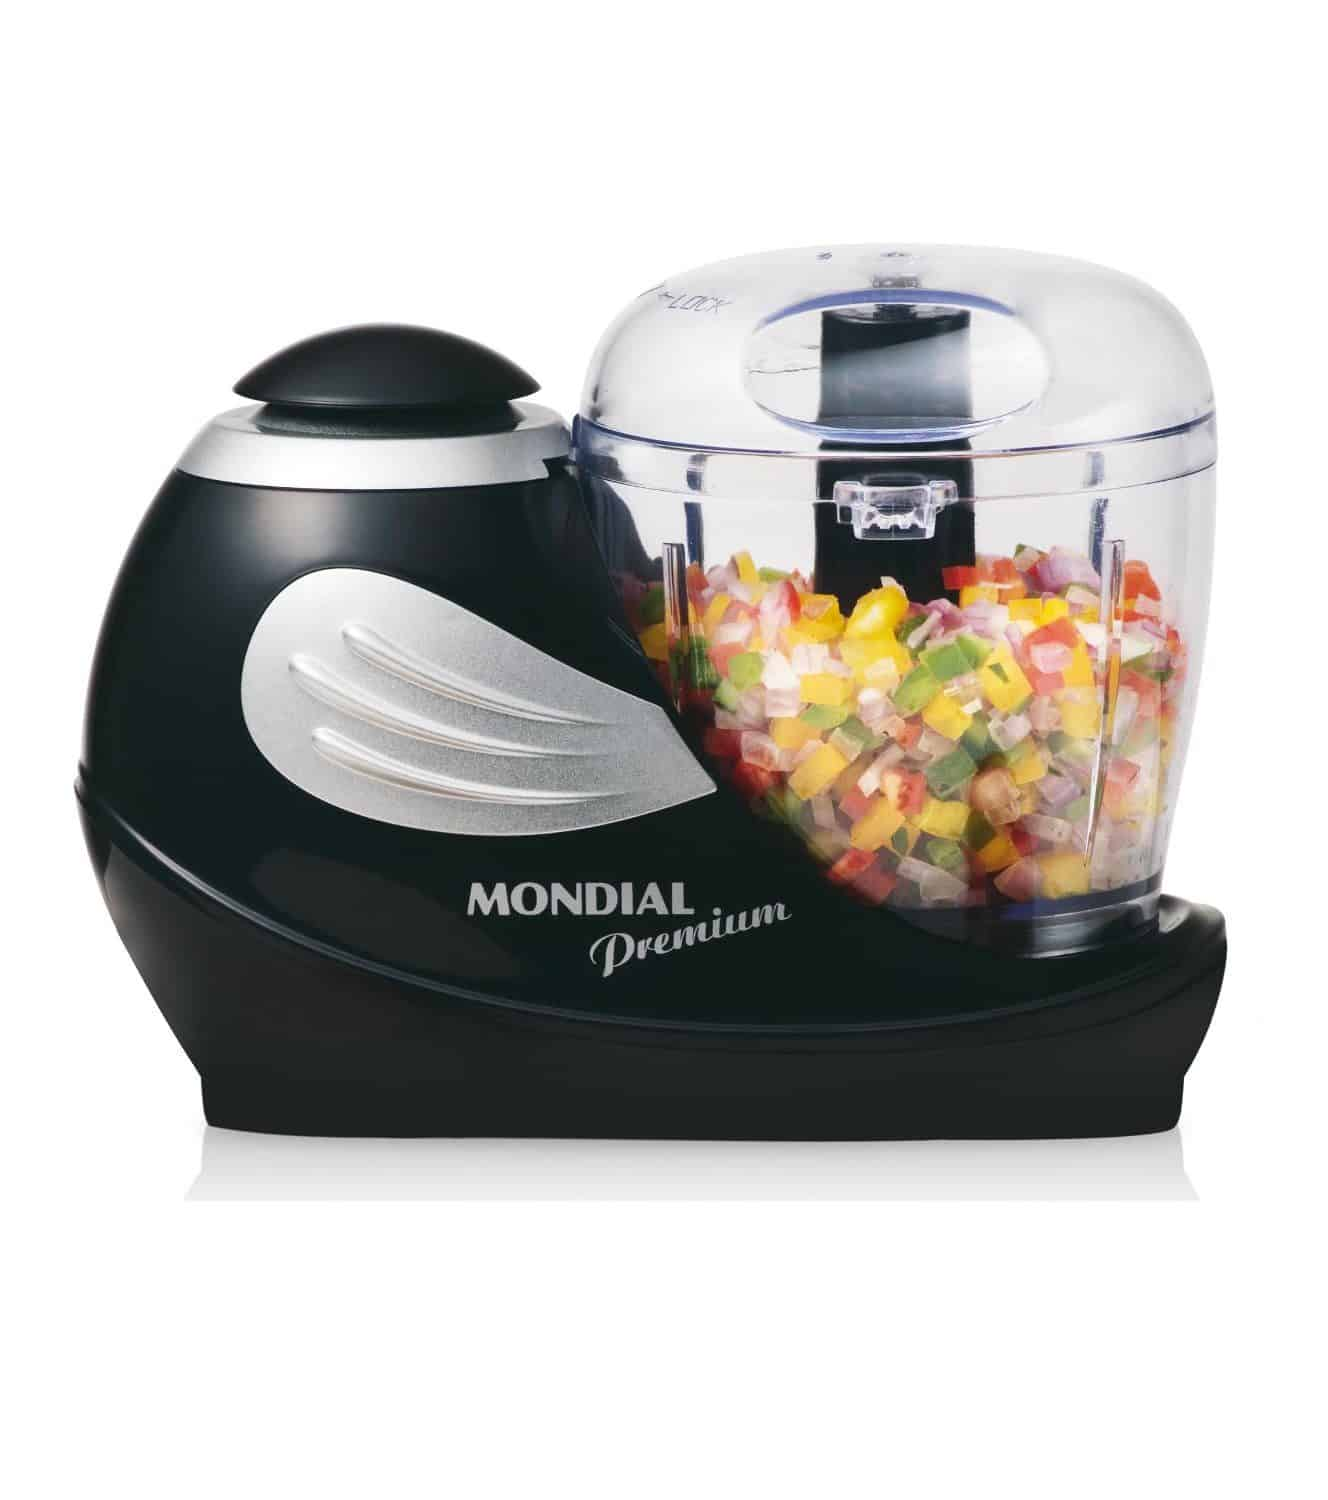 Mondial Model MP-01 Food Processor Review